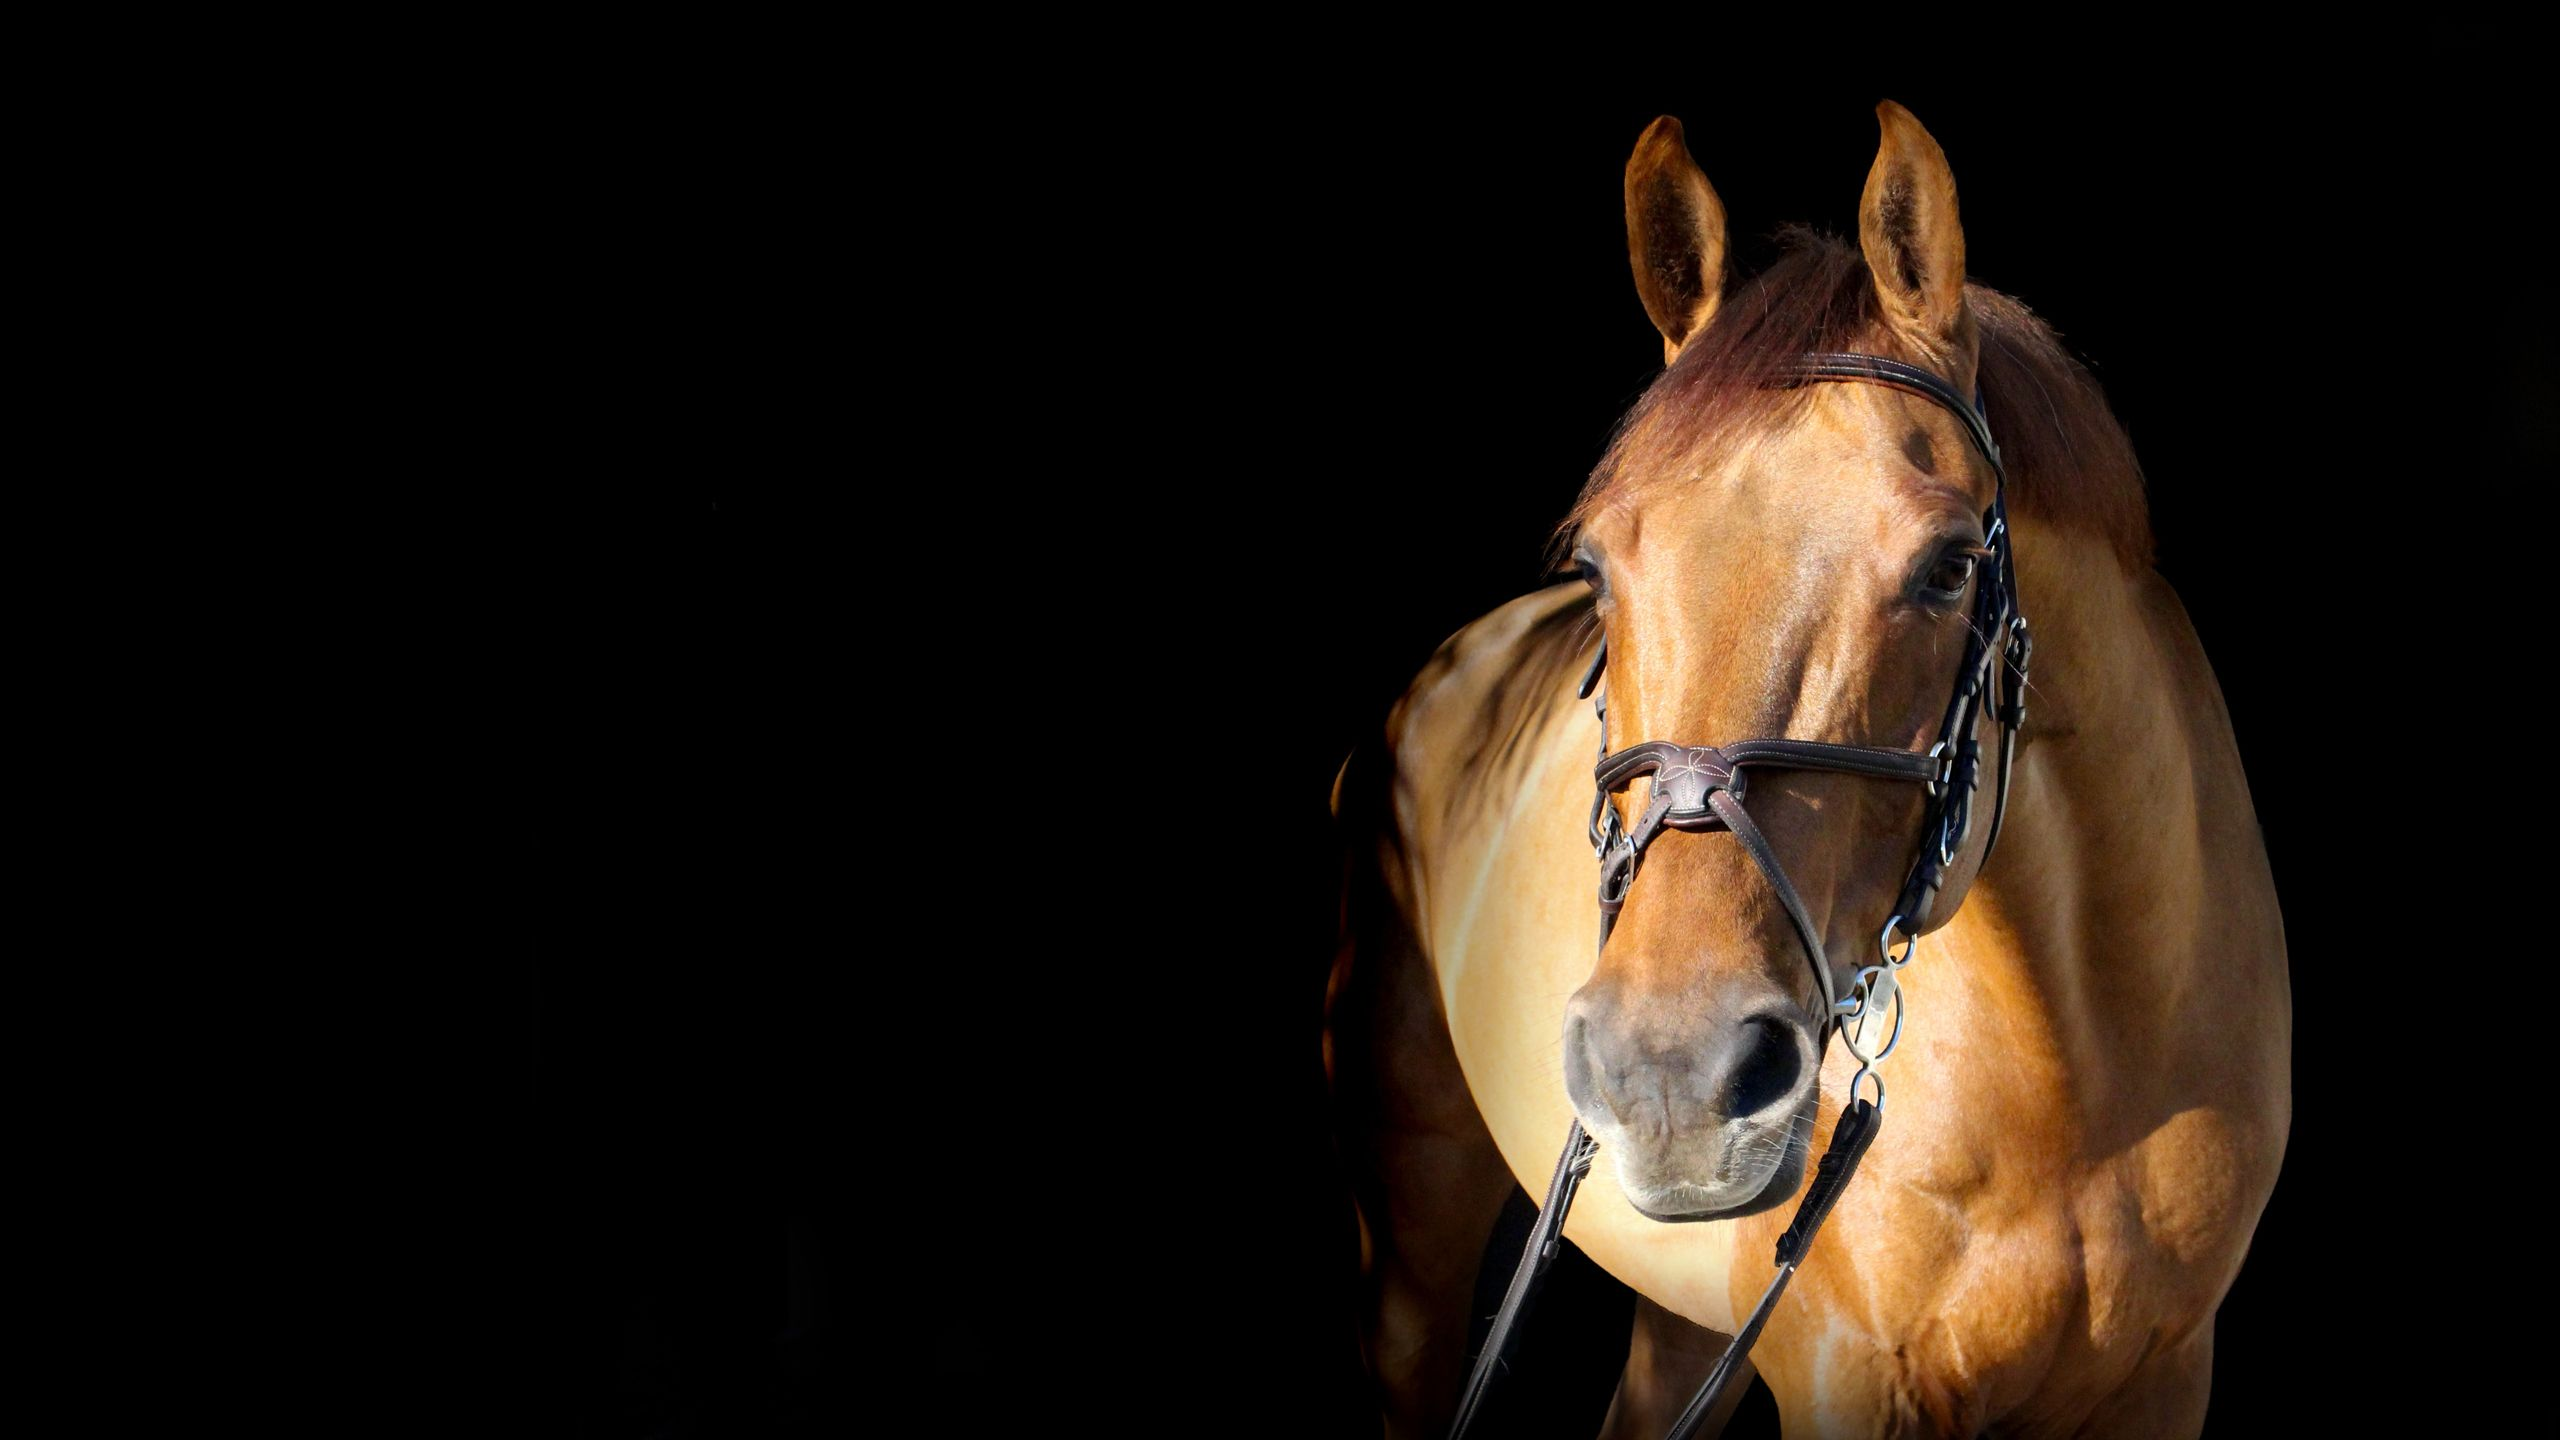 equine web design and web development in Kent by Storm